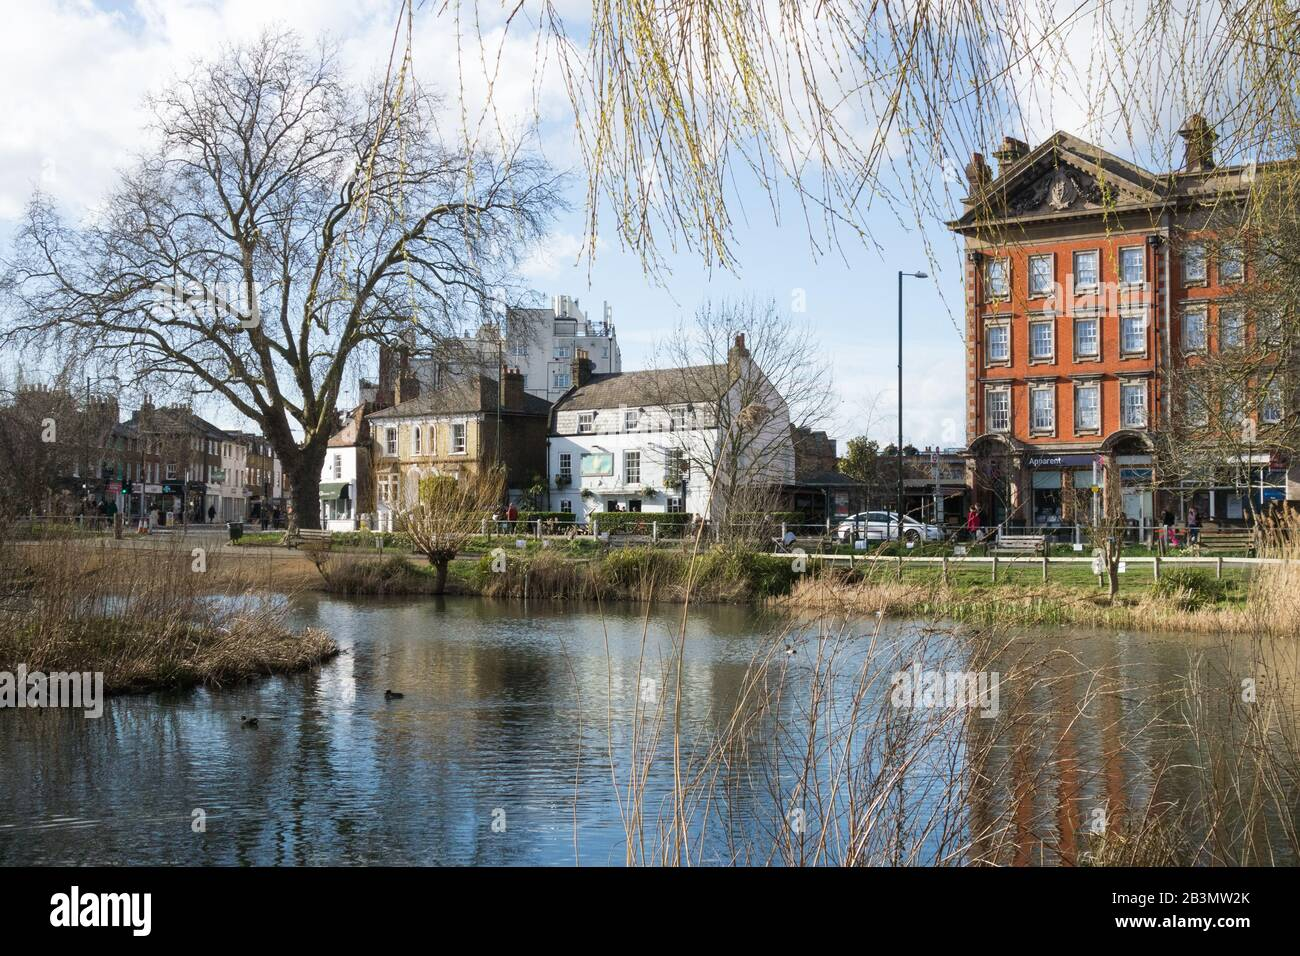 The Sun Inn and Barnes Pond in southwest London, UK Stock Photo